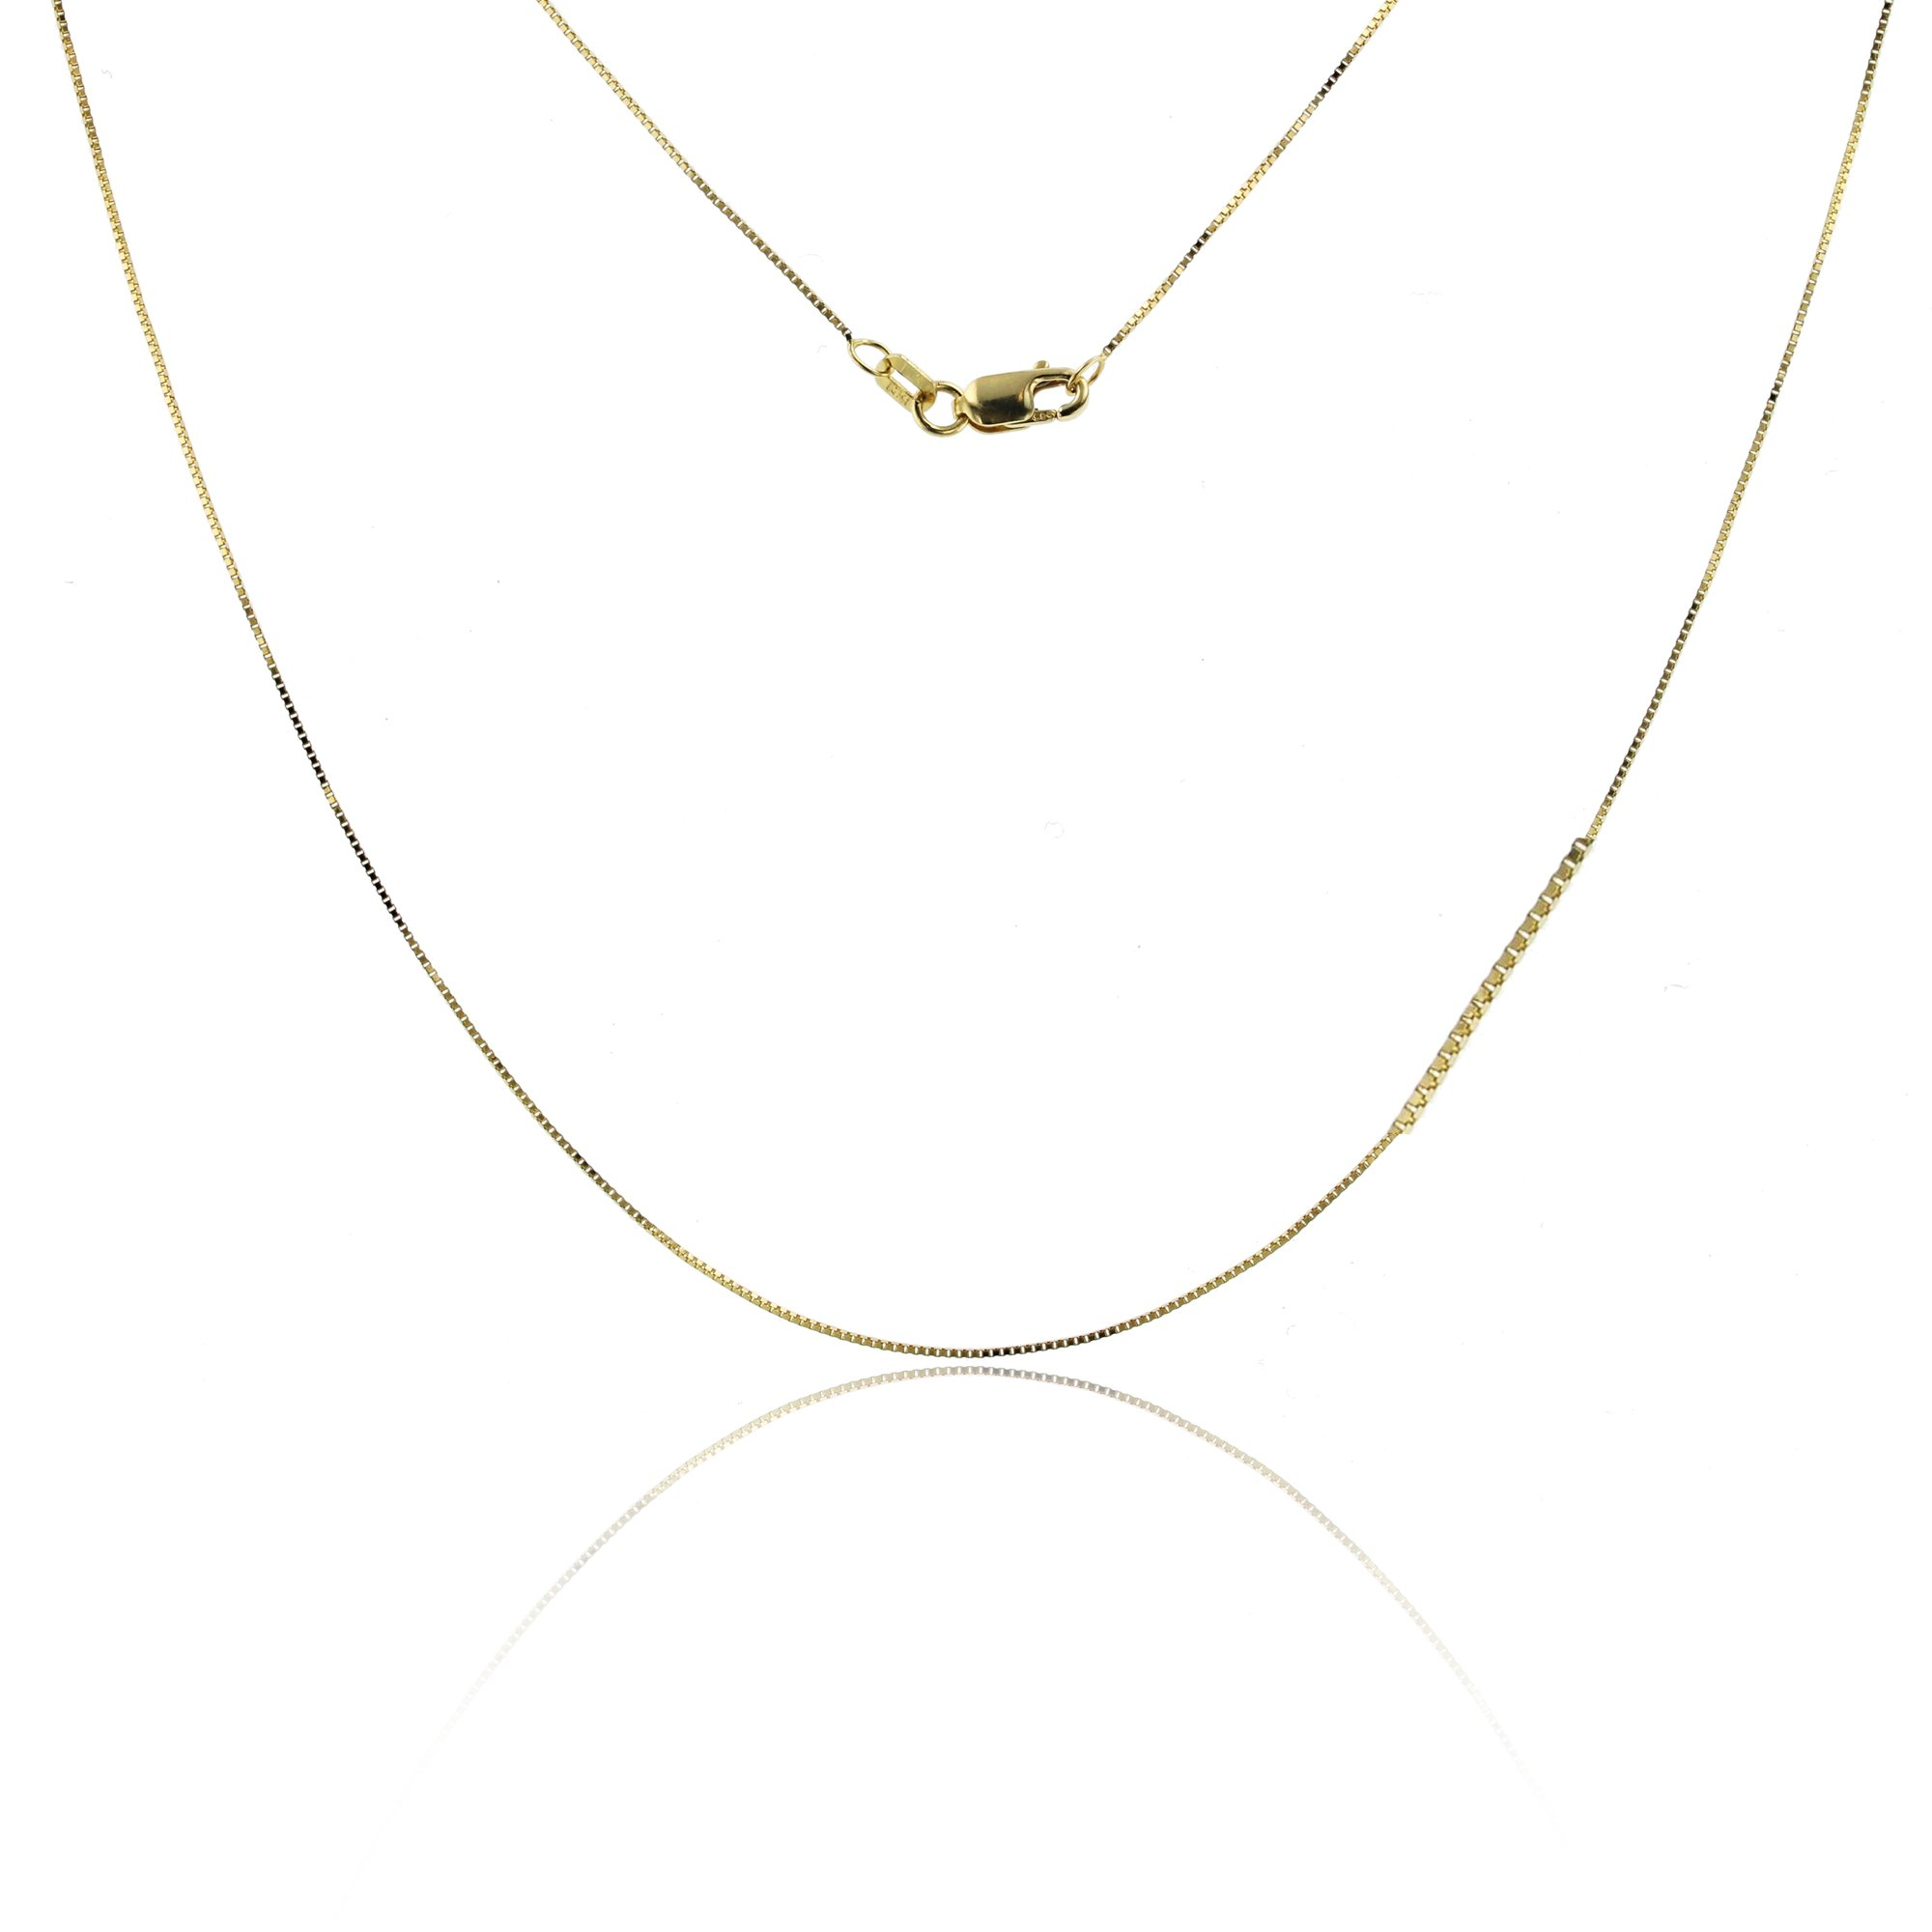 14K Yellow Gold Box 012 0.72mm 24'' Pendant Chain by Decadence